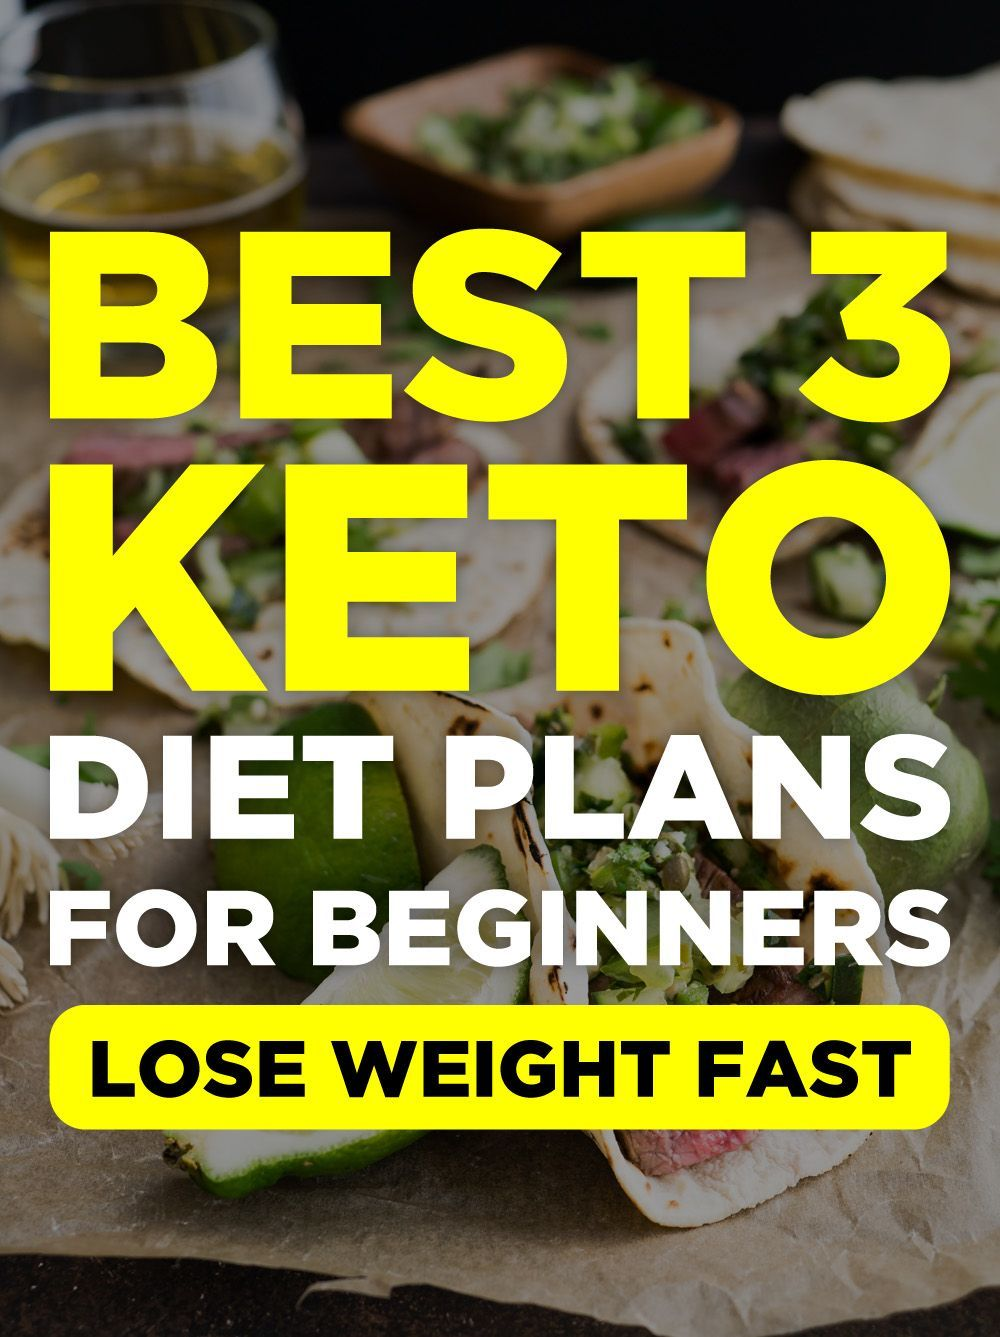 Keto Diet Plans, keto diet meaning, 	beginner yoga for weight loss, 	how to eat to lose weight,  #myfitnesspalrecipes keto diet meaning, 	beginner yoga for weight loss, 	how to eat to lose weight,  how keto diet works, 	atkins diet, 	gym workout for beginners to lose weight,  myfitnesspal recipes, 	recipes foods, 	lose weight in a week,  keto diet meal prep, 	lose diet, 	hitt workout,  weight loss medications, 	ketogenic diet recipes easy, 	diet recipes healthy,  keto diet and gout, 	lose ten po #myfitnesspalrecipes